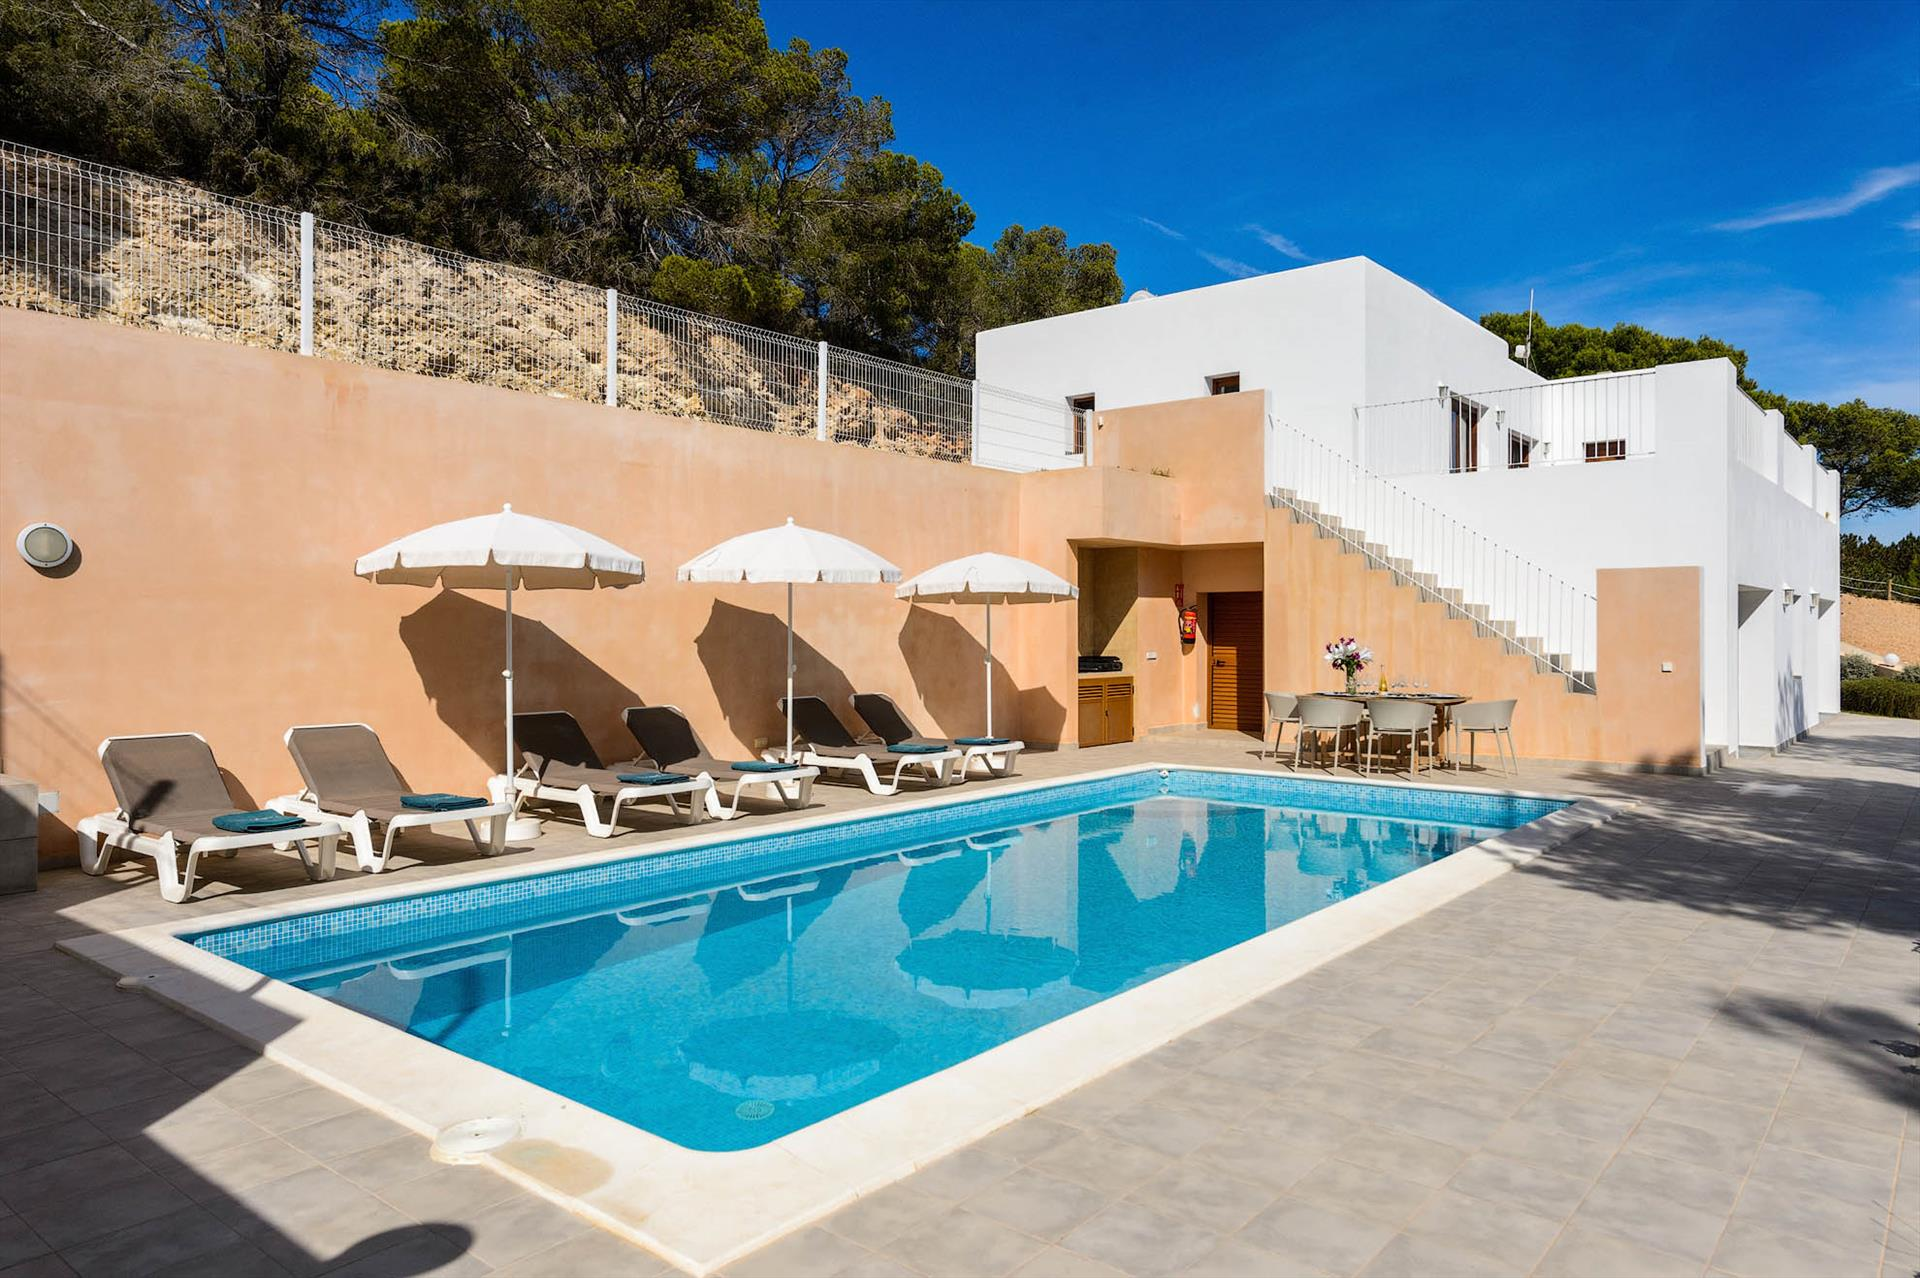 Blue Sky, Villa  with private pool in Es Cubells, Ibiza, Spain for 6 persons...